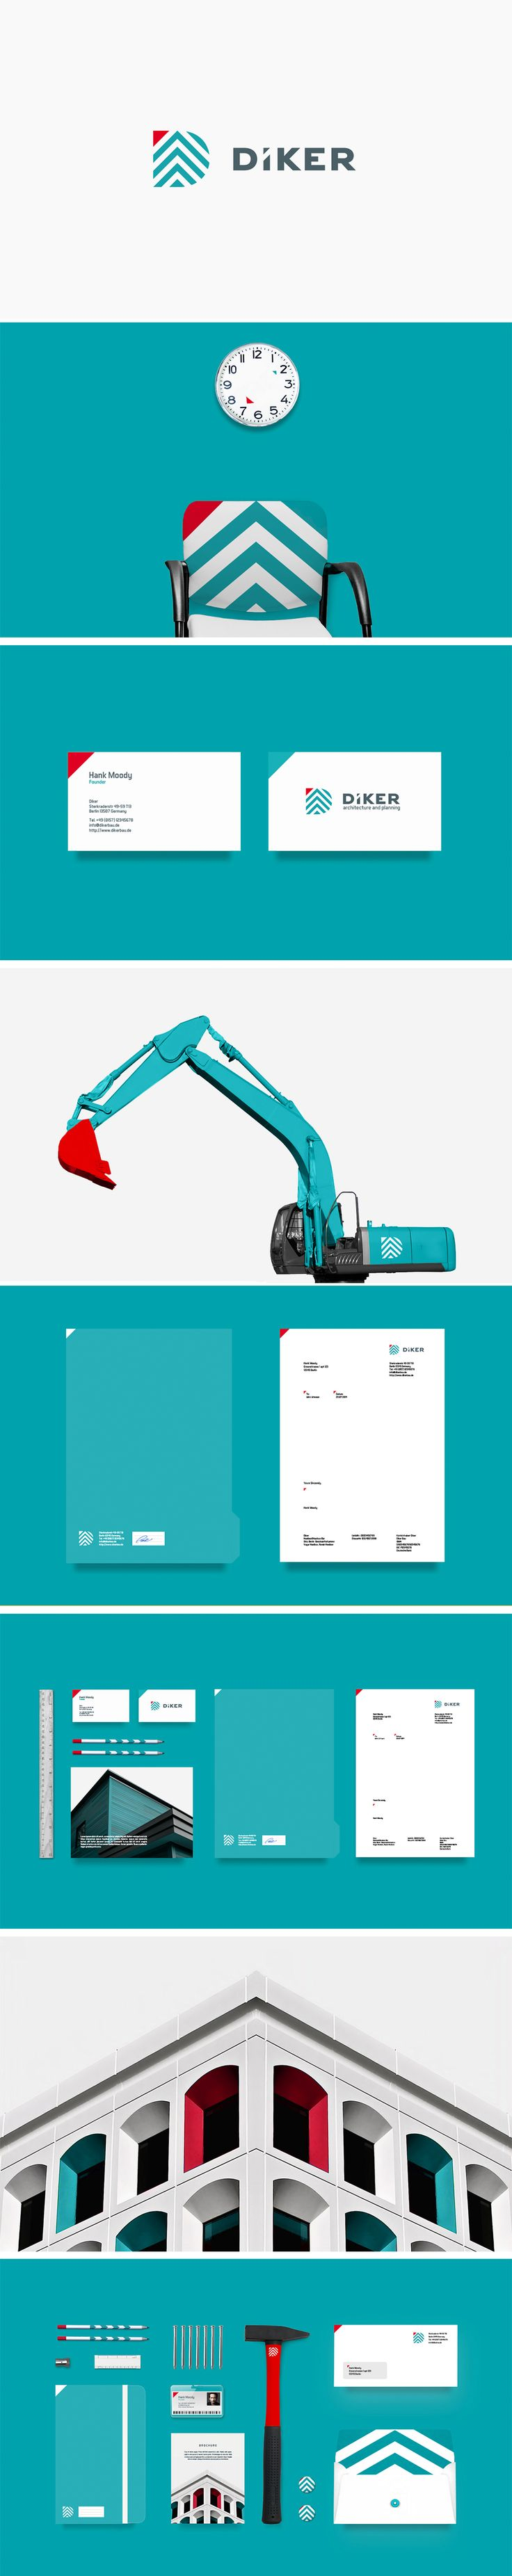 Brand Identity for Diker Bau, a Group of Construction companies based in Berlin, Germany